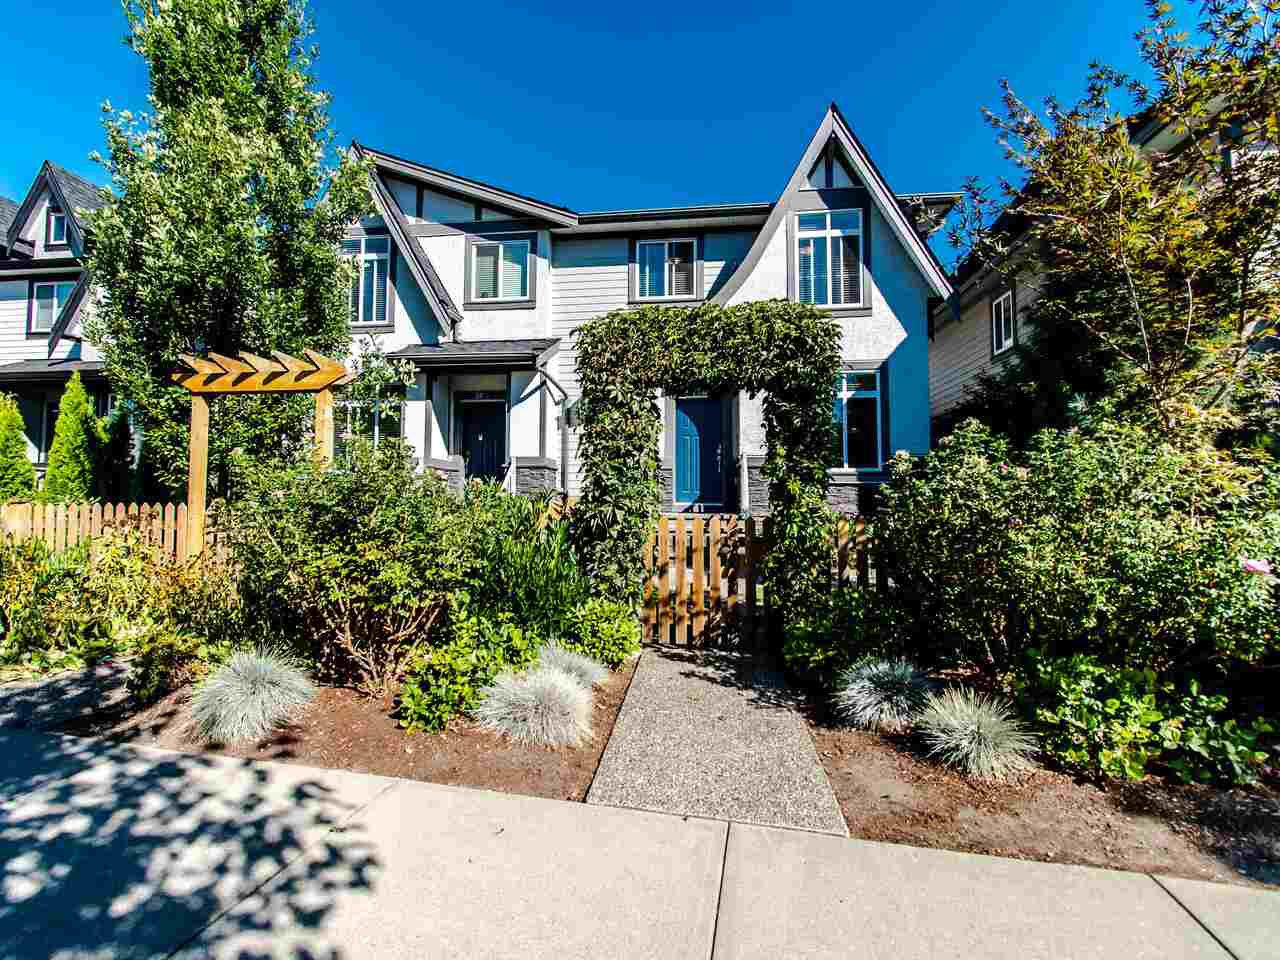 Main Photo: 21003 80 Avenue in Langley: Willoughby Heights Condo for sale : MLS®# R2496824